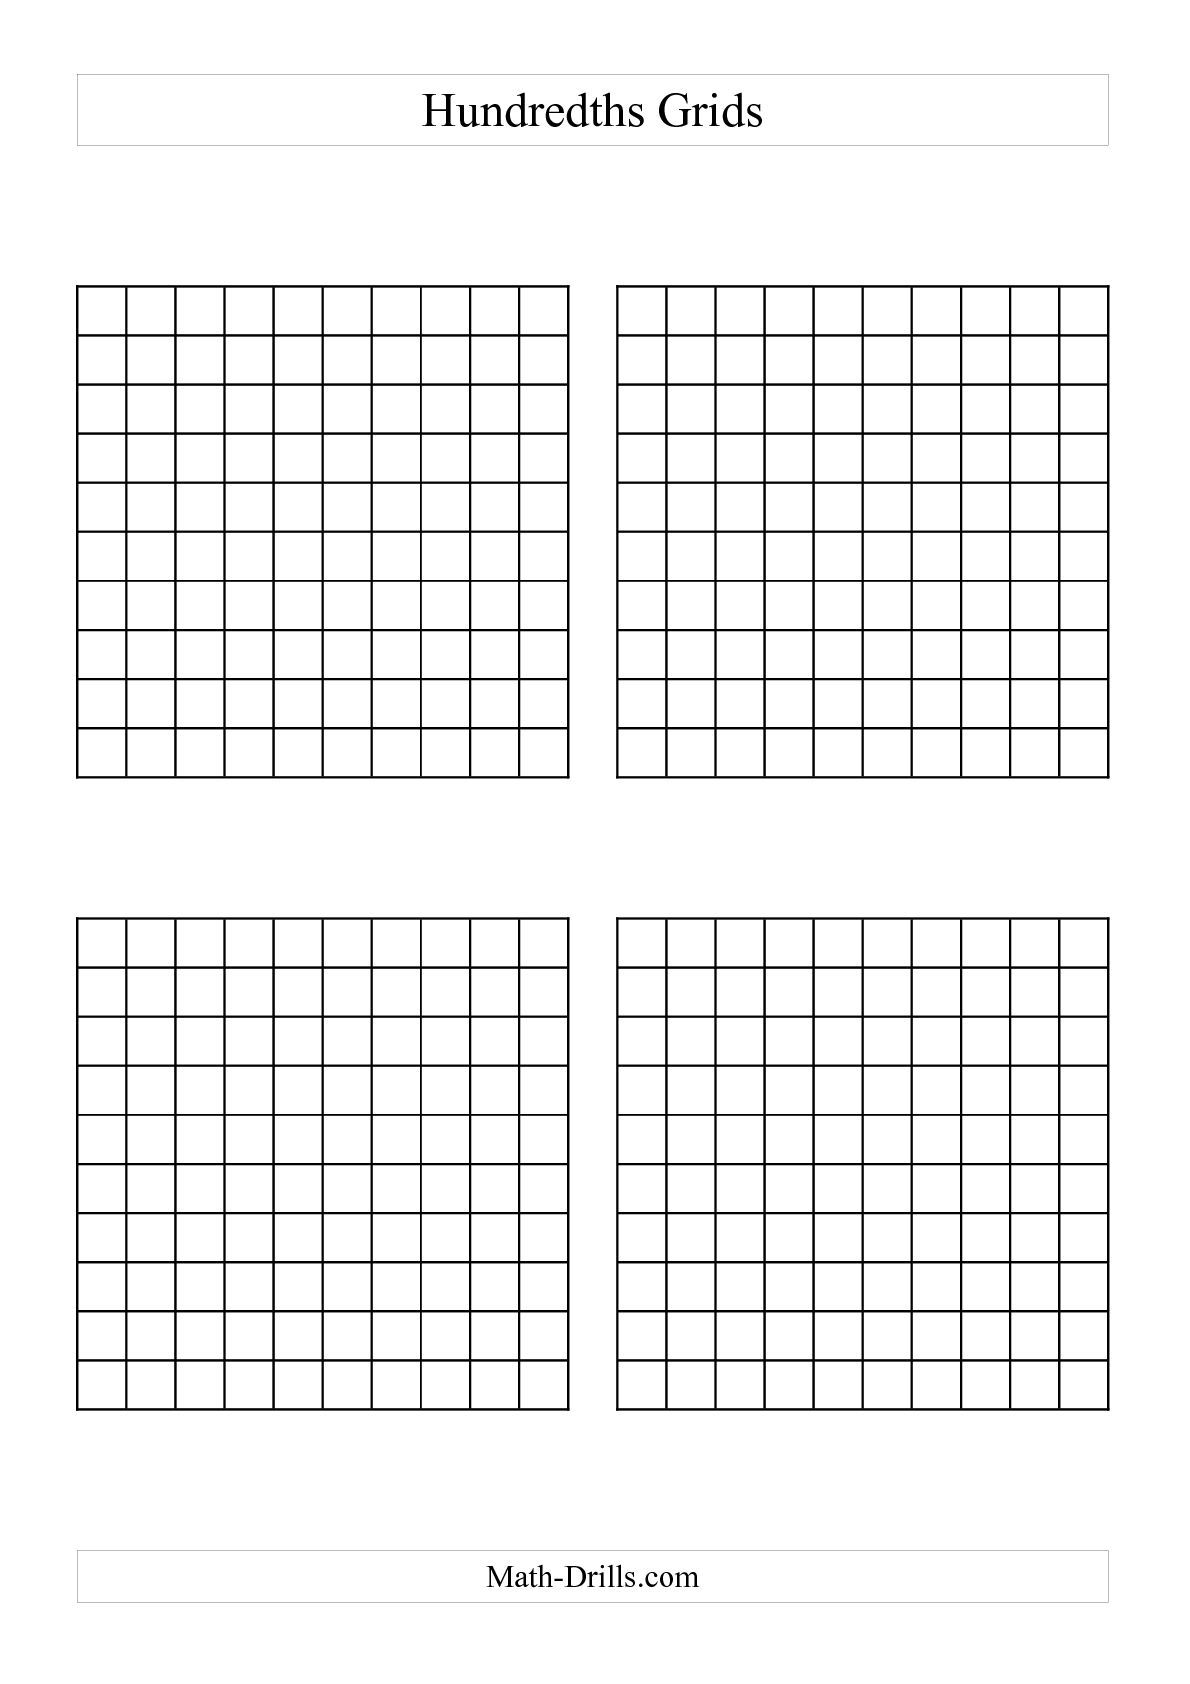 10 By 10 Grids To Add Decimals